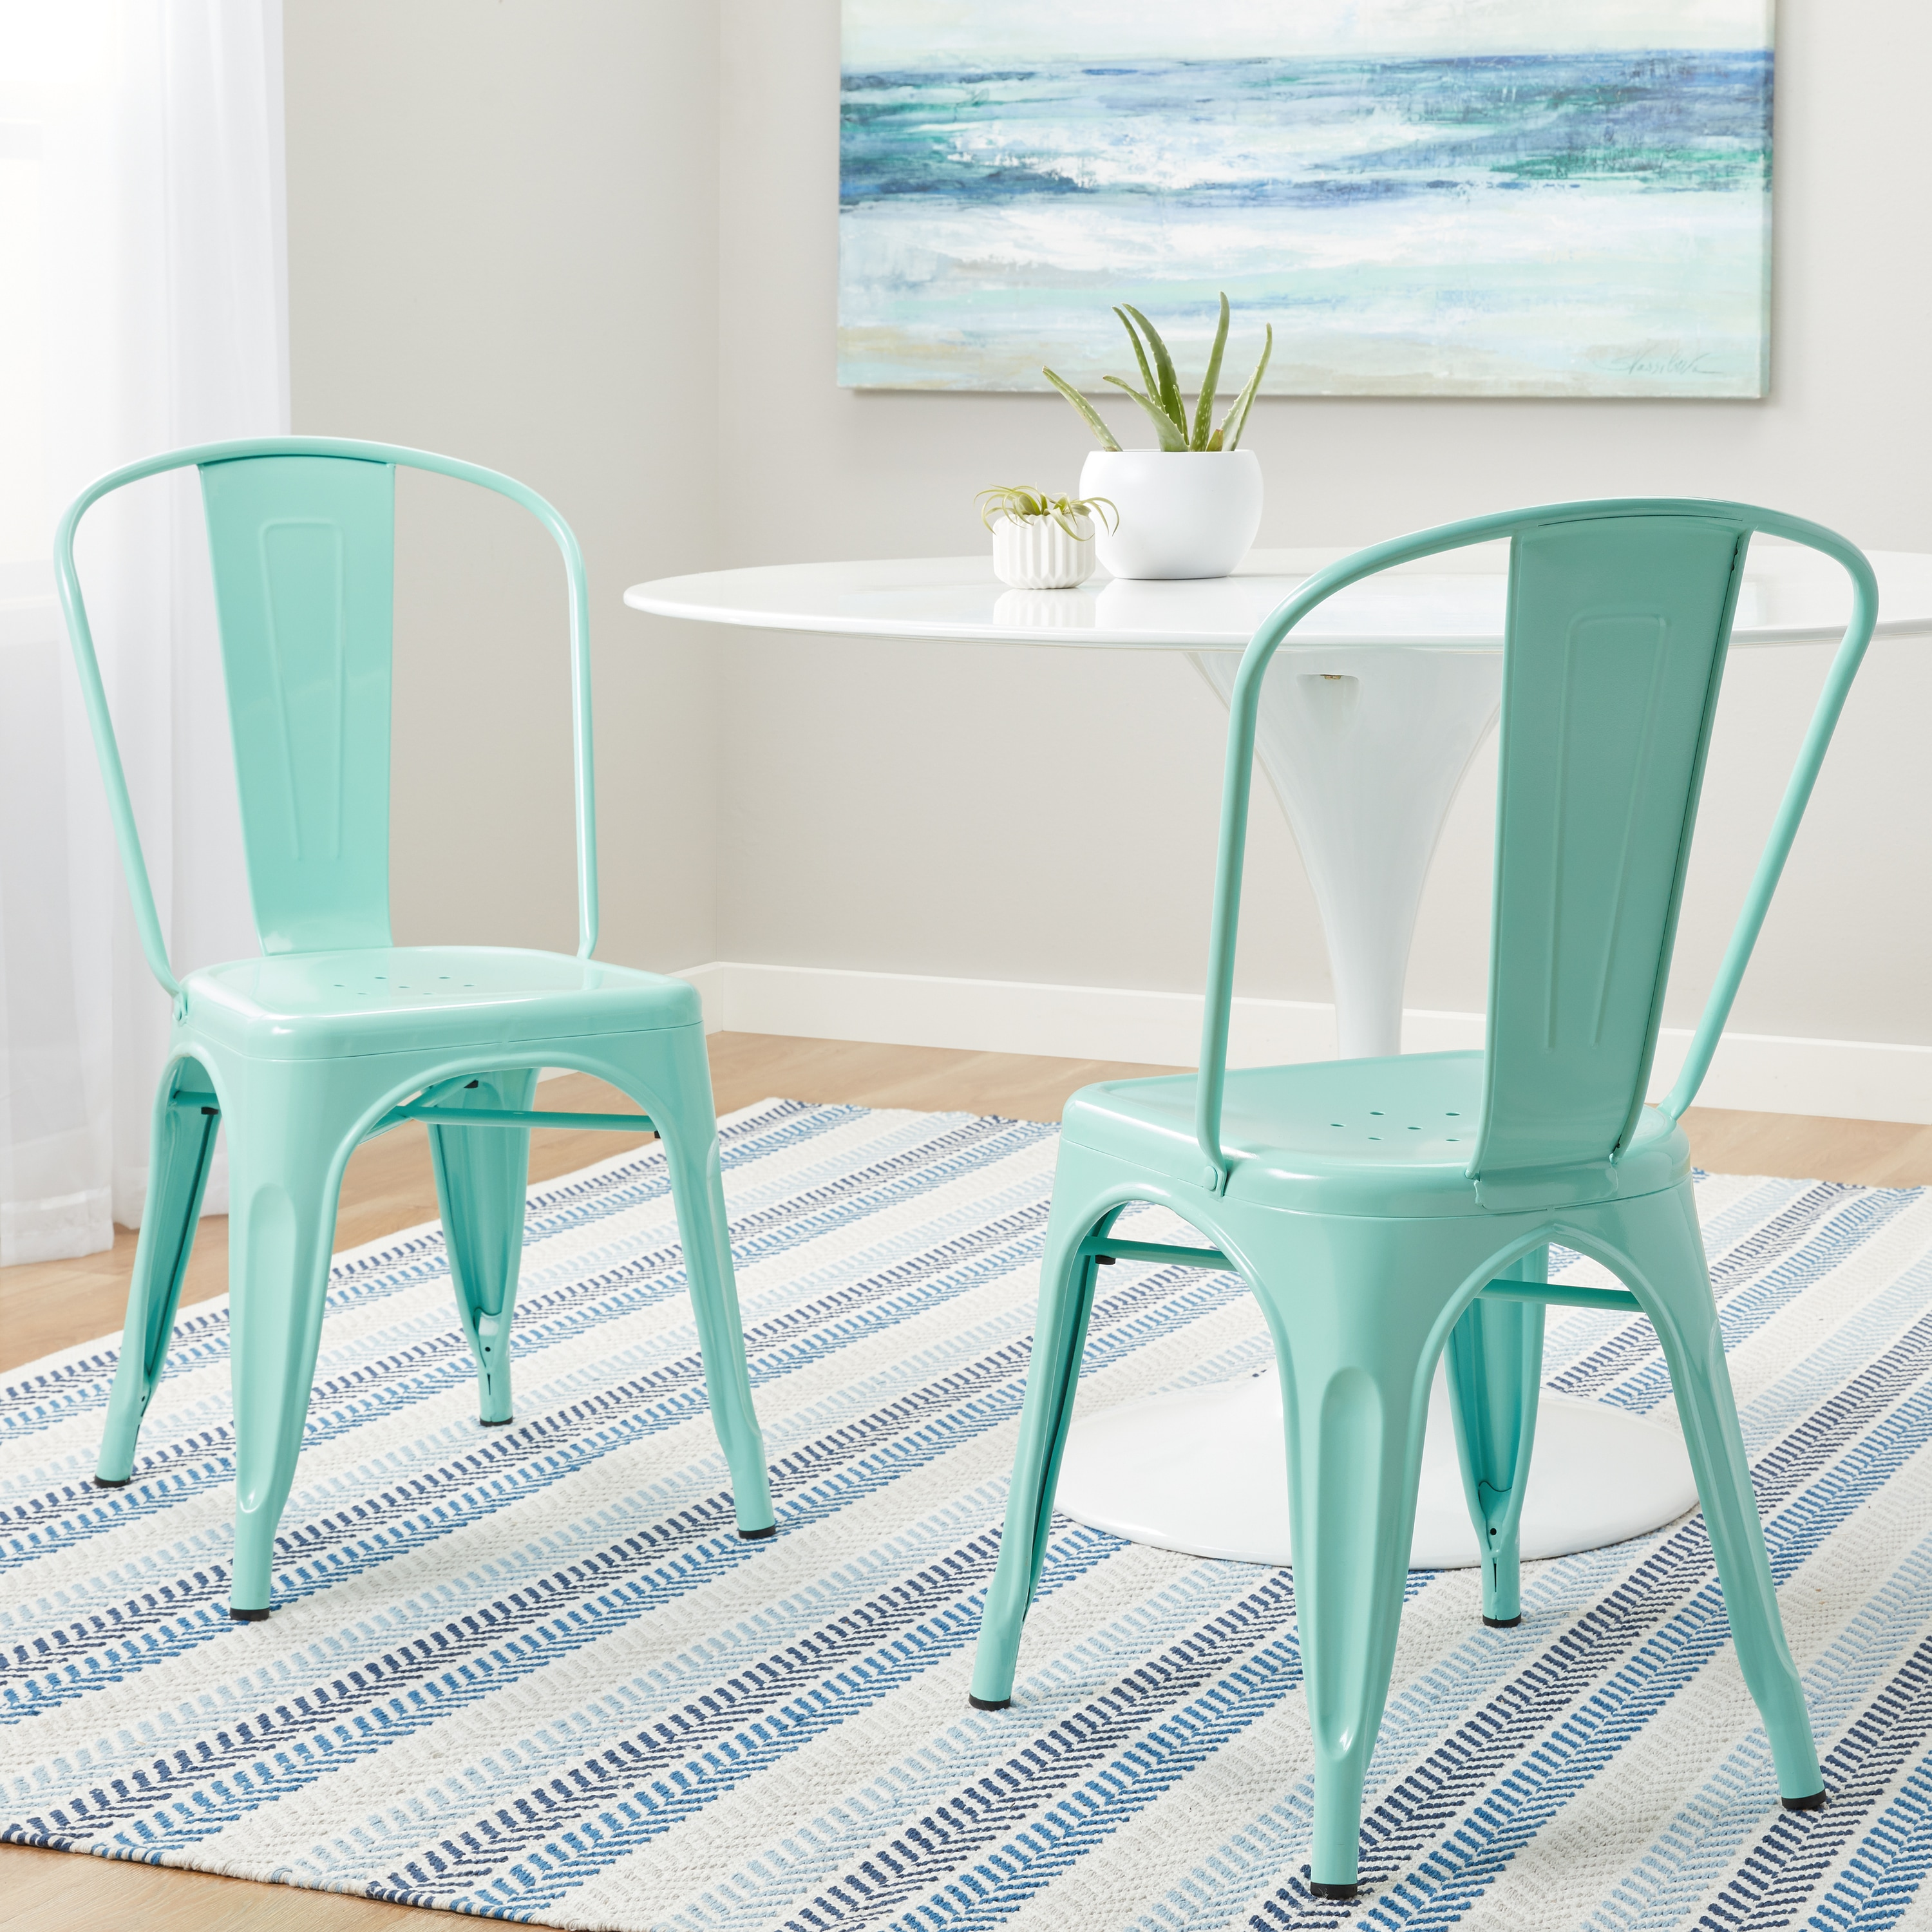 Buy Kitchen & Dining Room Chairs - Clearance & Liquidation Online at ...